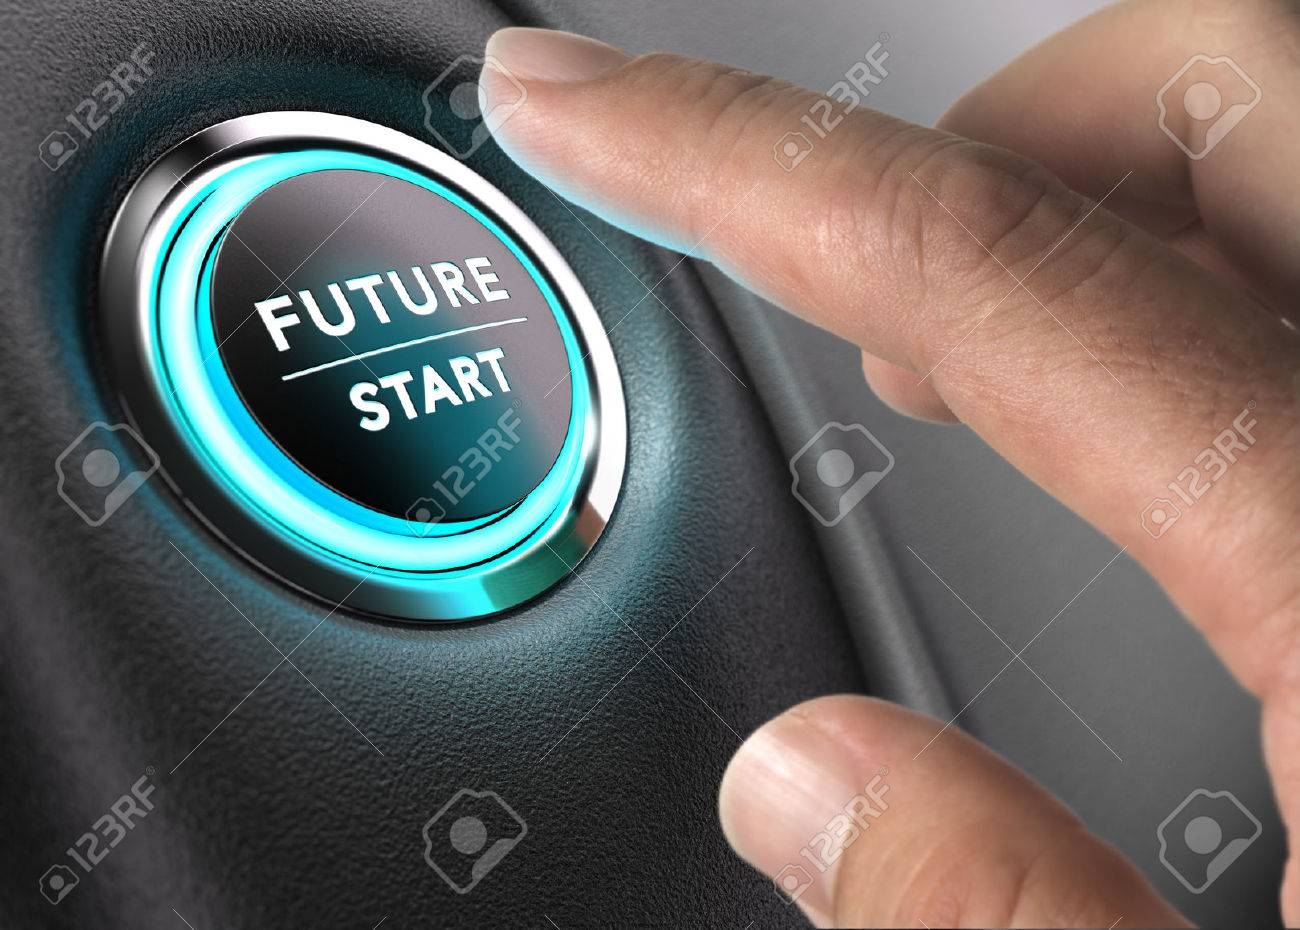 Finger about to press future button with blue light over black and grey background. Concept image for illustration of change or strategic vision. - 51242997